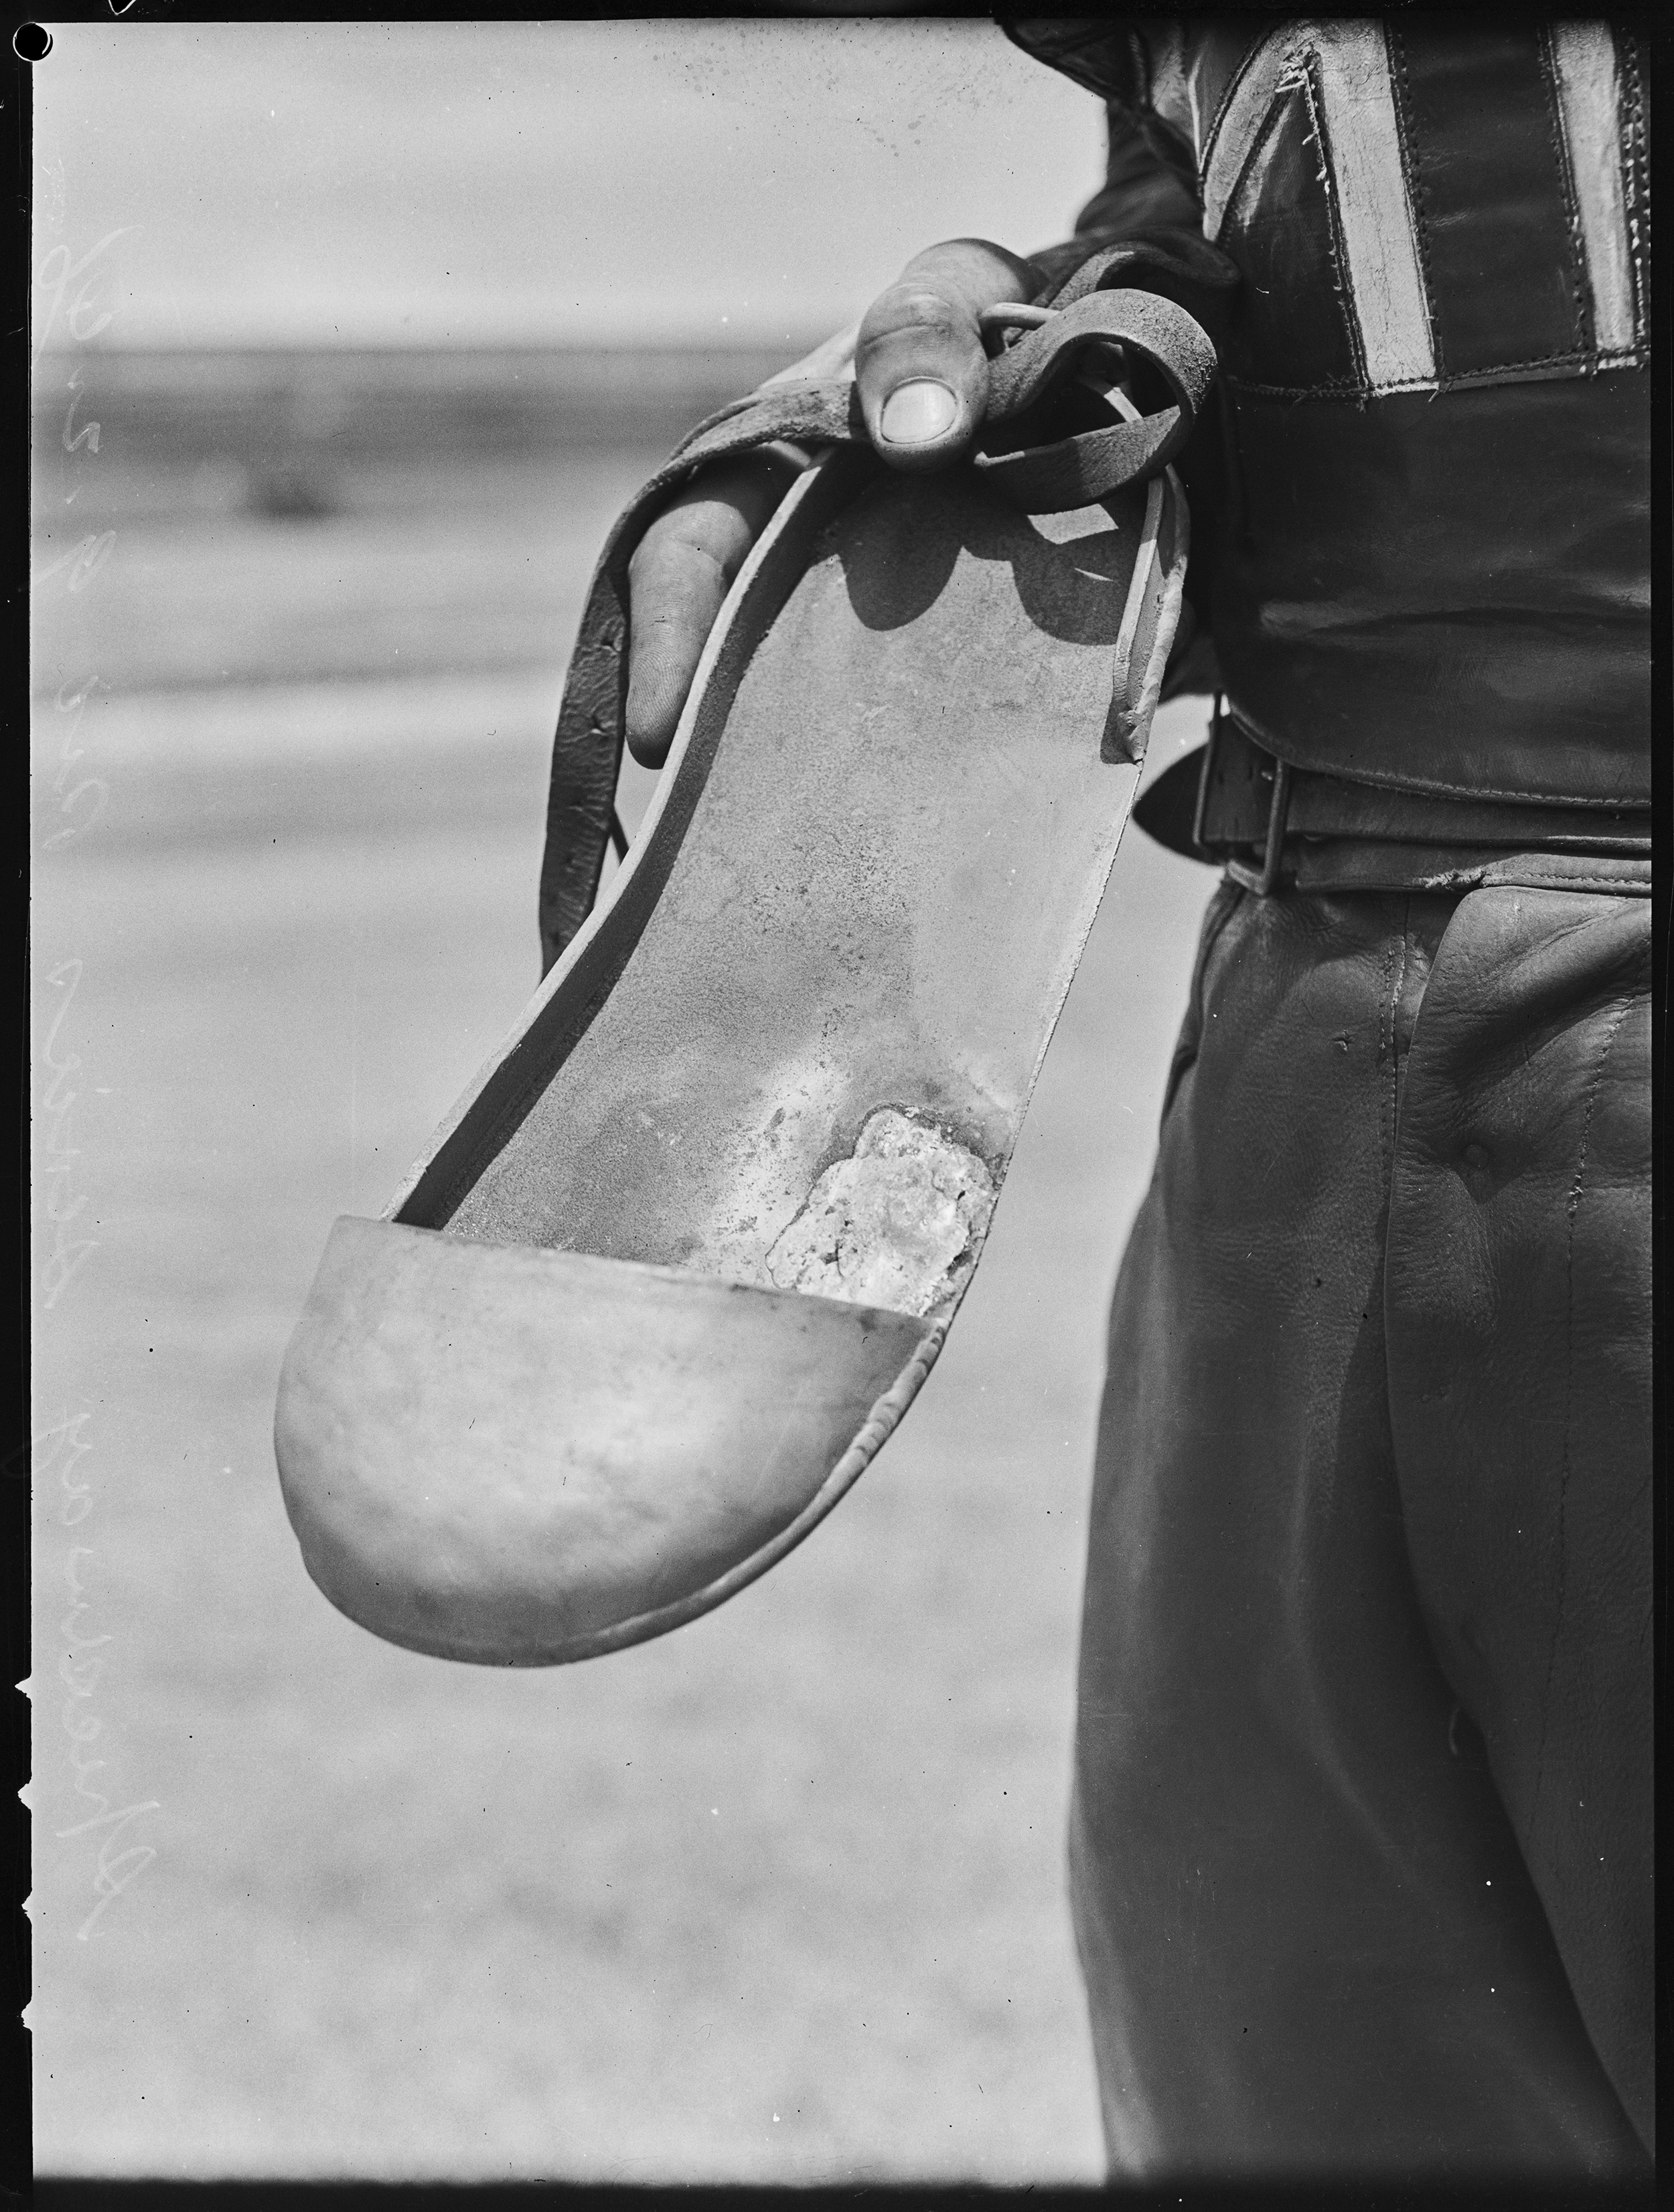 Metal shoe cover worn by speedway cyclist, 9 February 1946, photo by Ray Olson